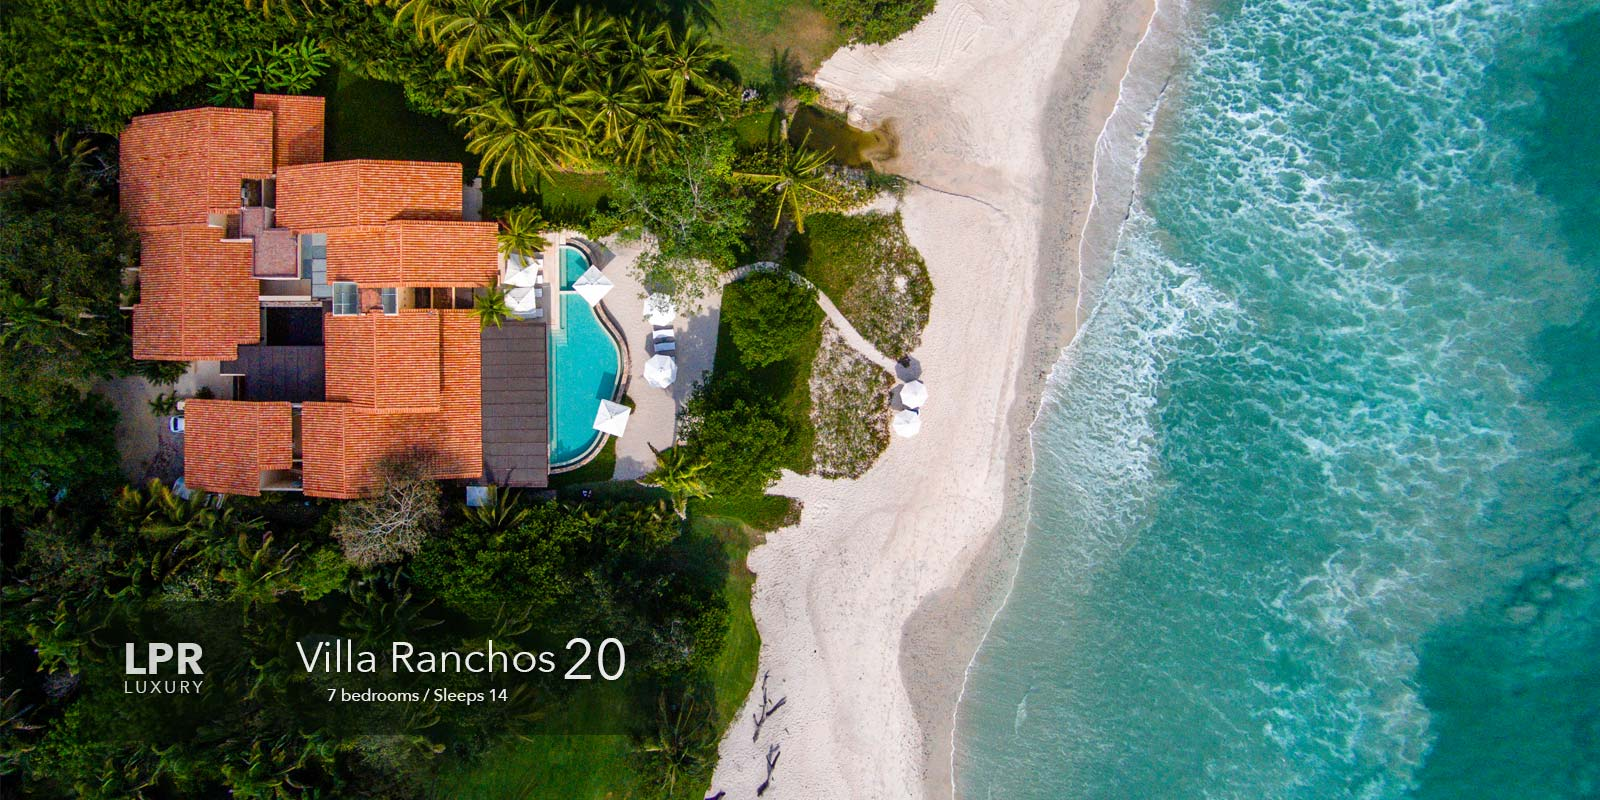 Villa Ranchos 20 - On the sweetest spot of beach at the Punta Mita Resort